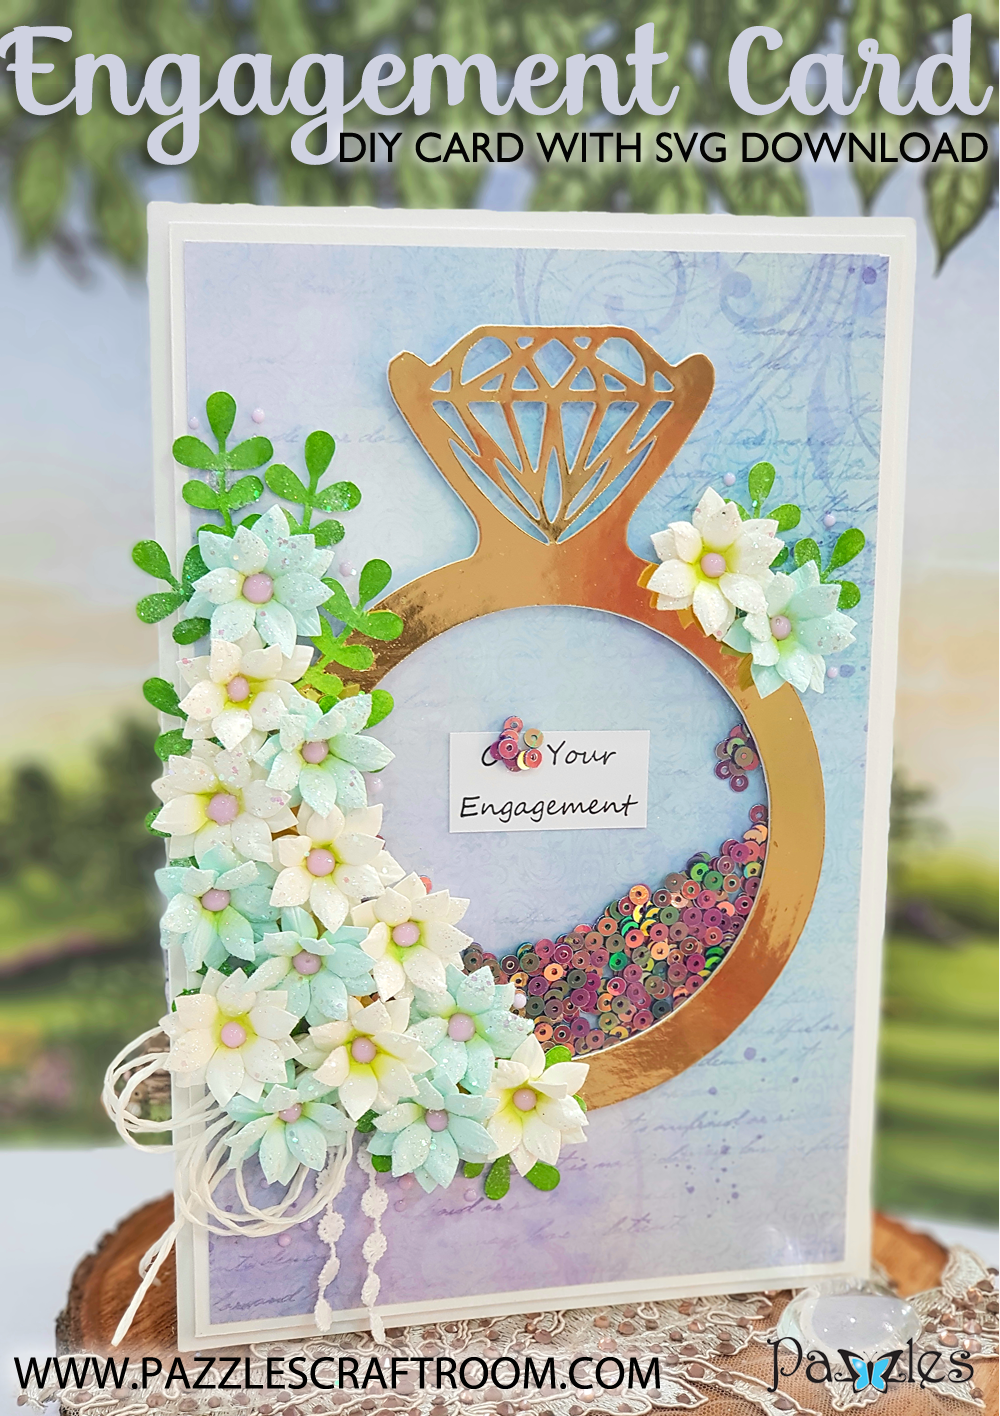 Pazzles DIY Engagement Card or DIY Wedding Card with instant SVG download. Compatible with all major electronic cutters including Pazzles Inspiration, Cricut, and Silhouette Cameo. Design by Nida Tanweer.